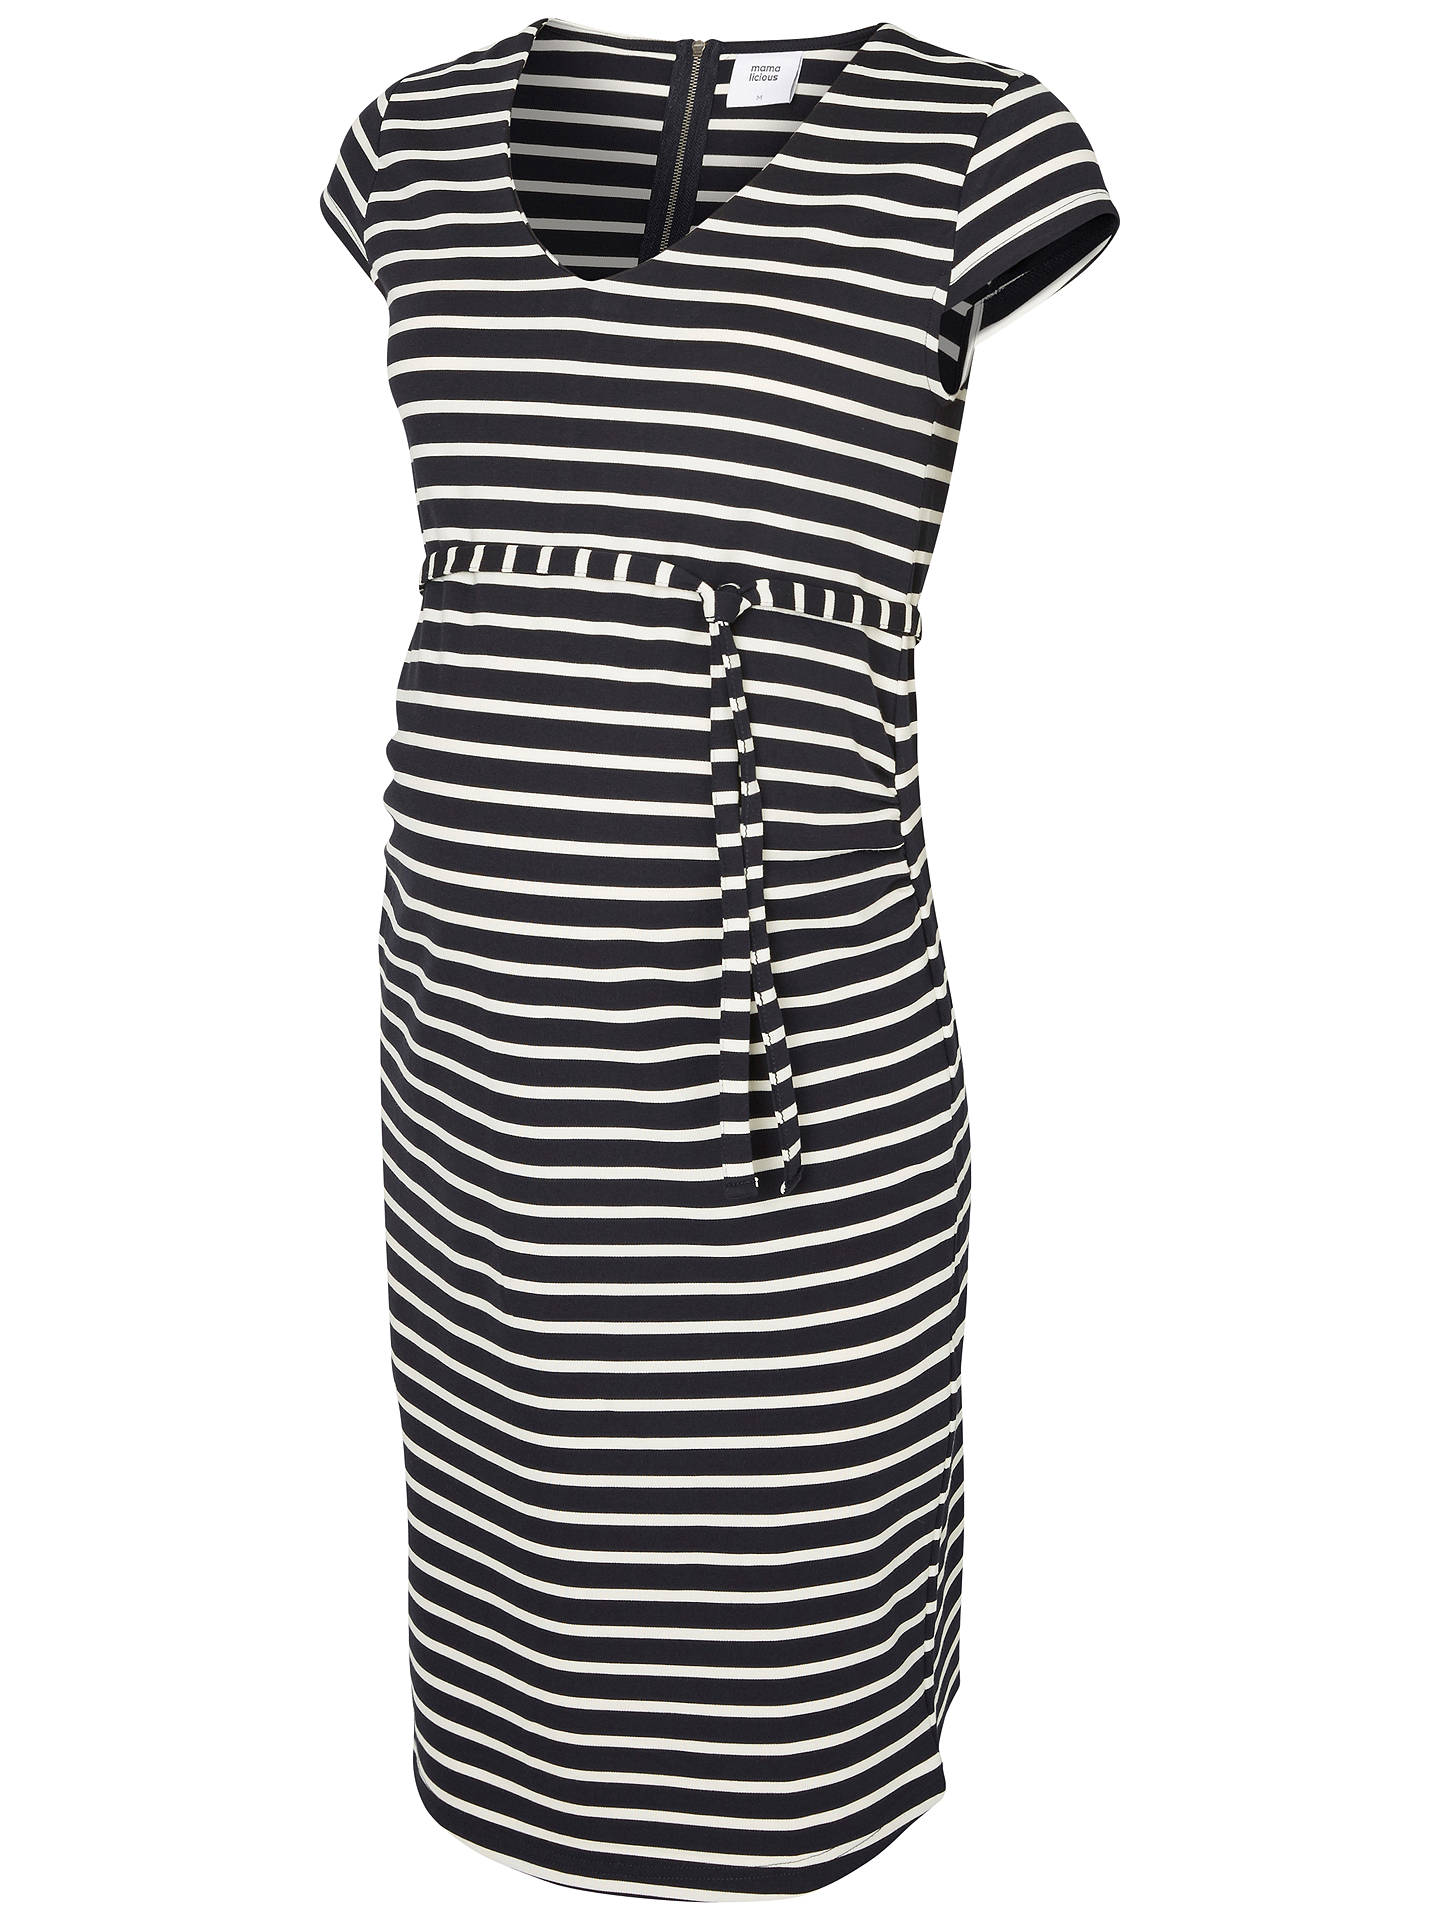 77a6c16b10f2c Buy Mamalicious Striped Maternity Jersey Dress, Navy/White, S Online at  johnlewis.